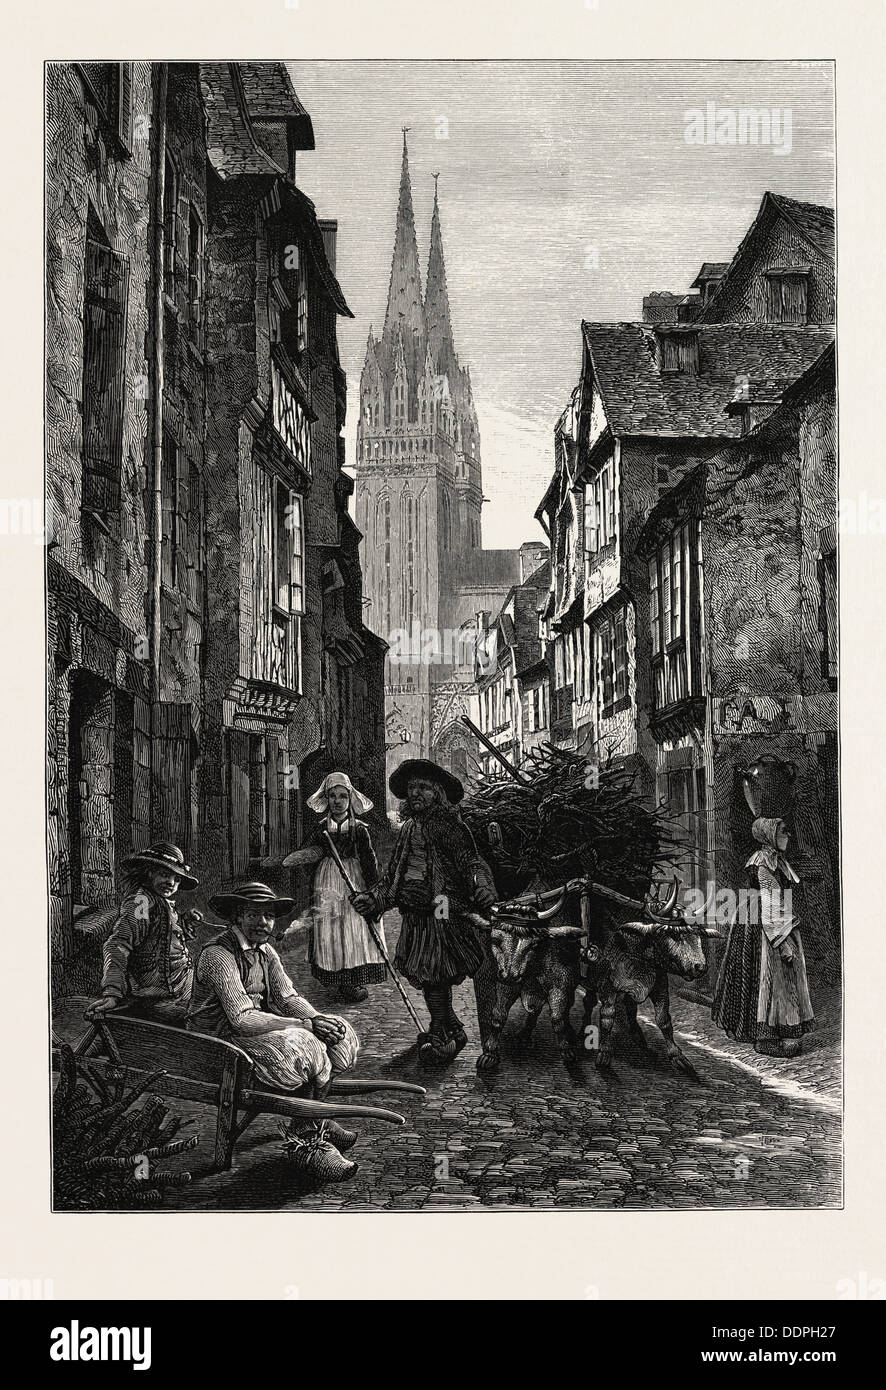 QUIMPER, NORMANDY AND BRITTANY, FRANCE, 19th century engraving - Stock Image